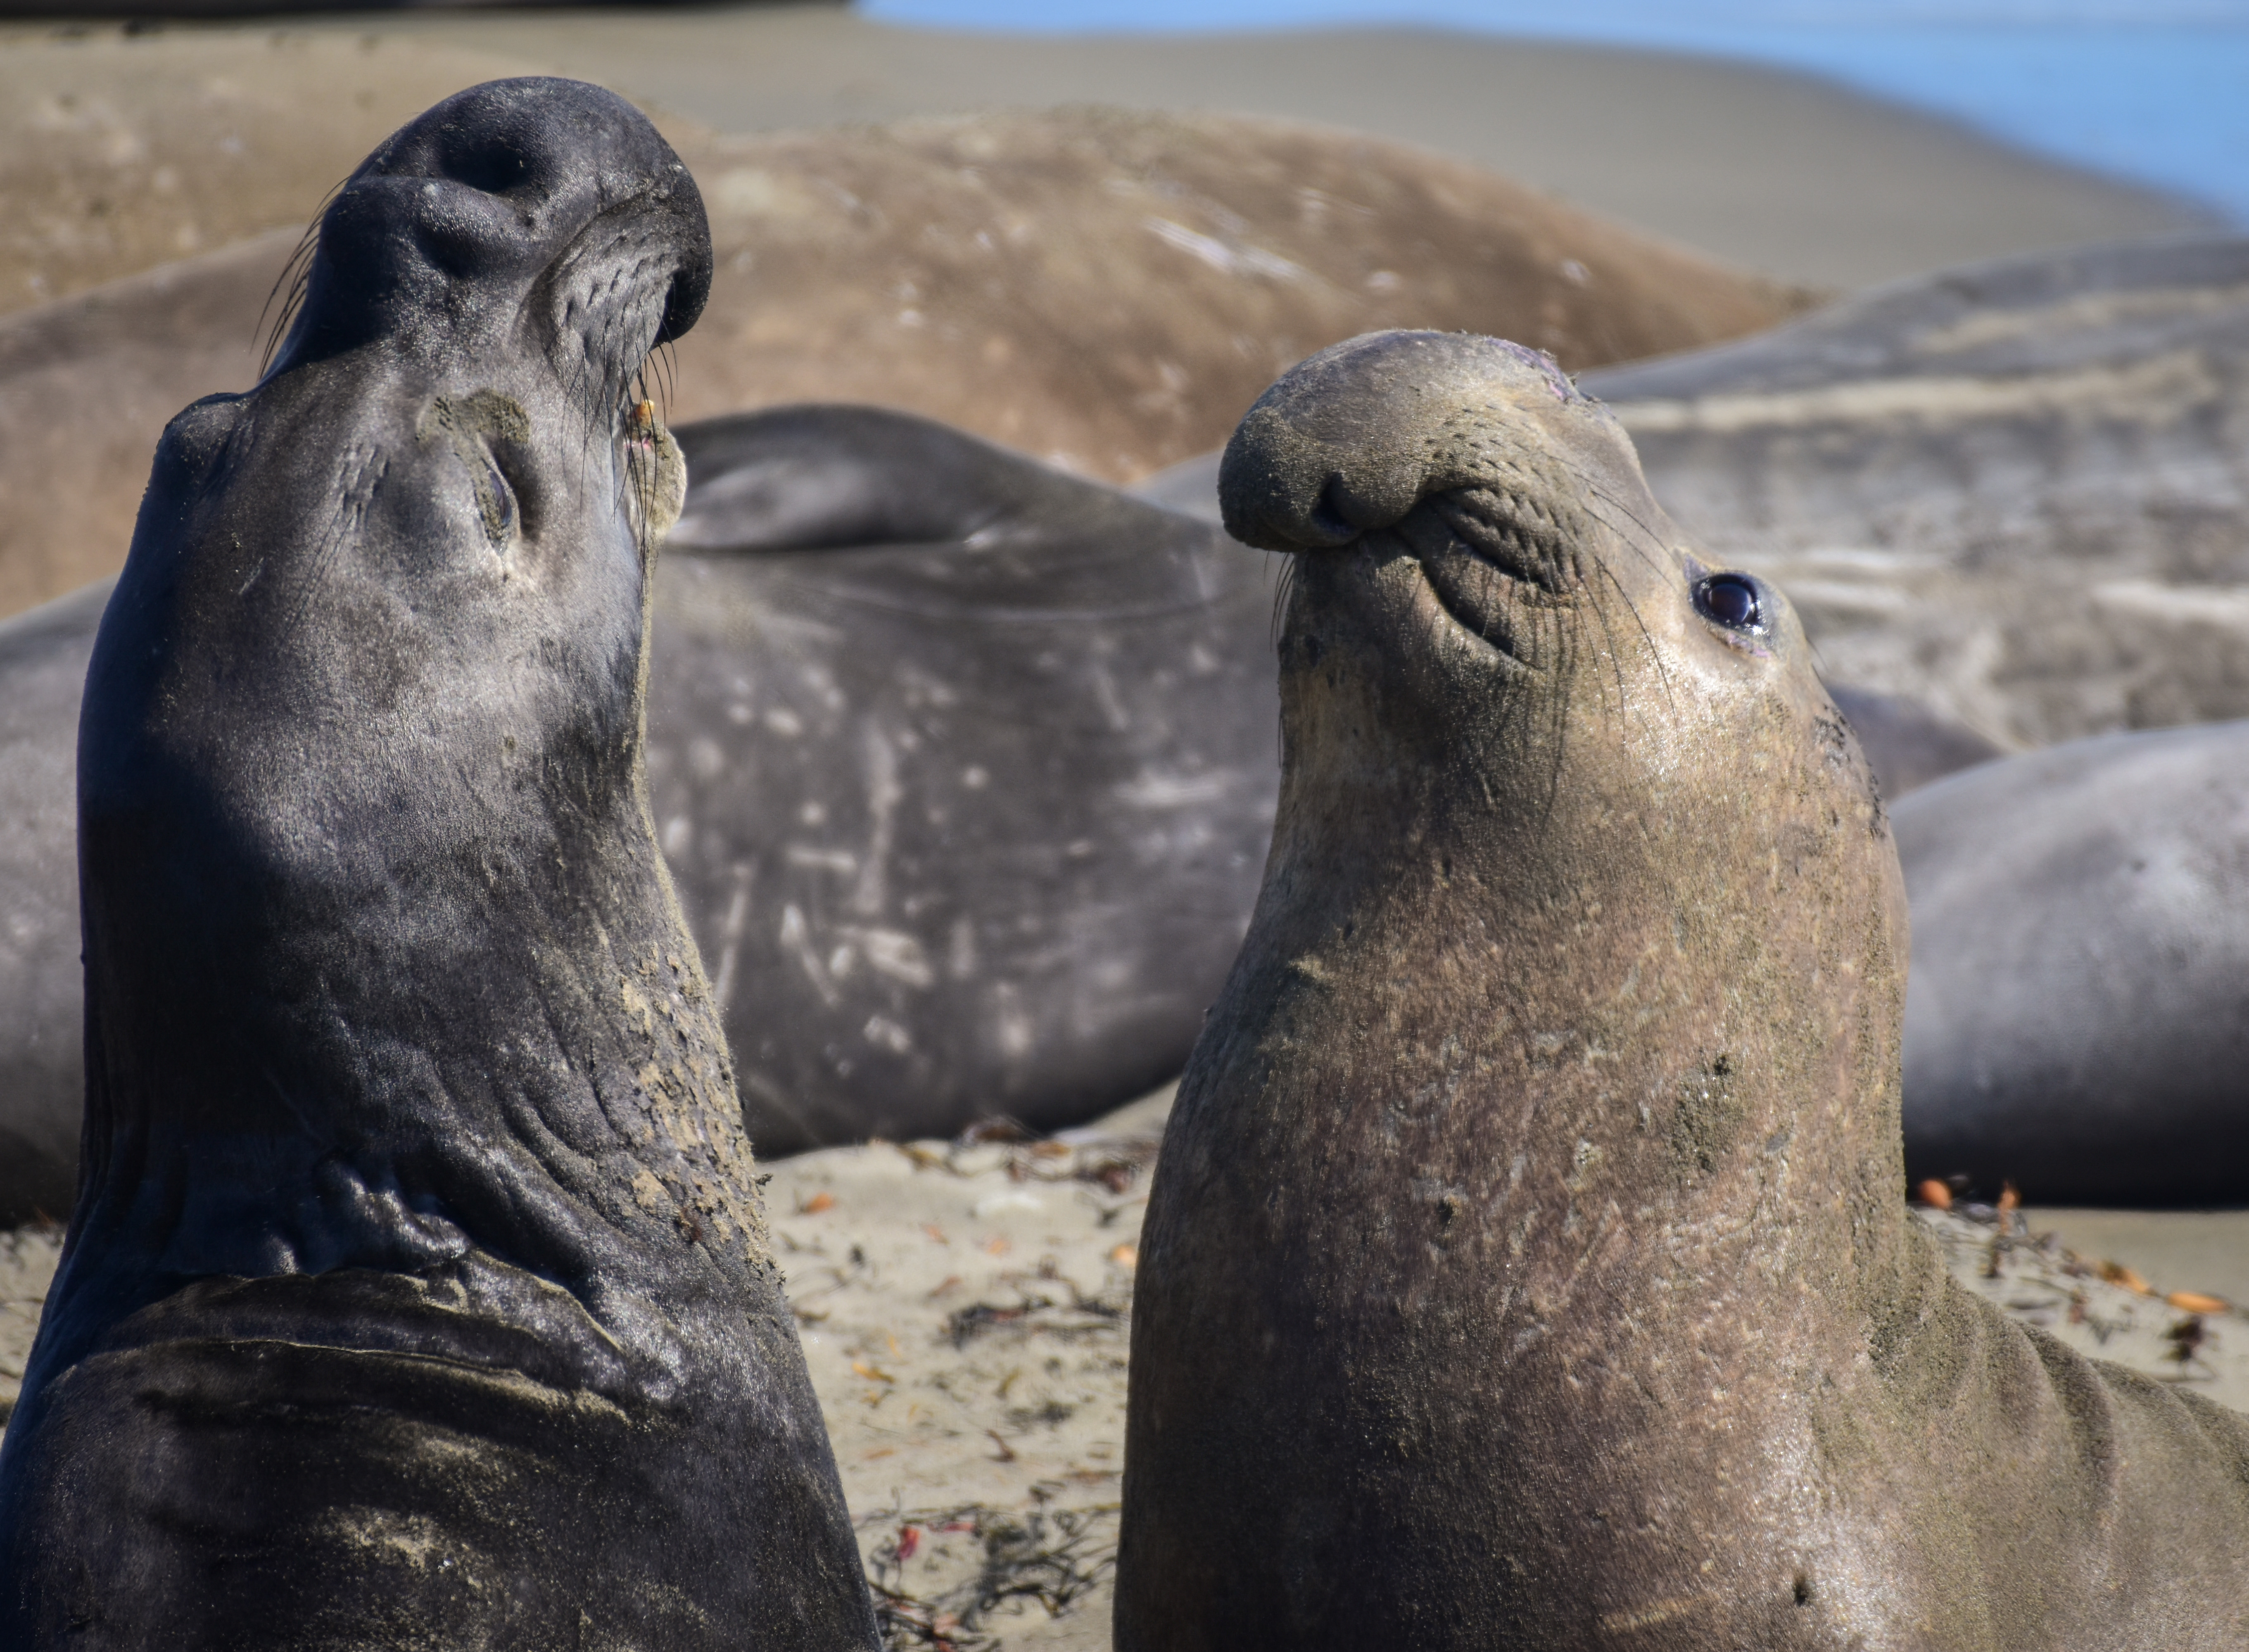 Two northern elephant seals face off